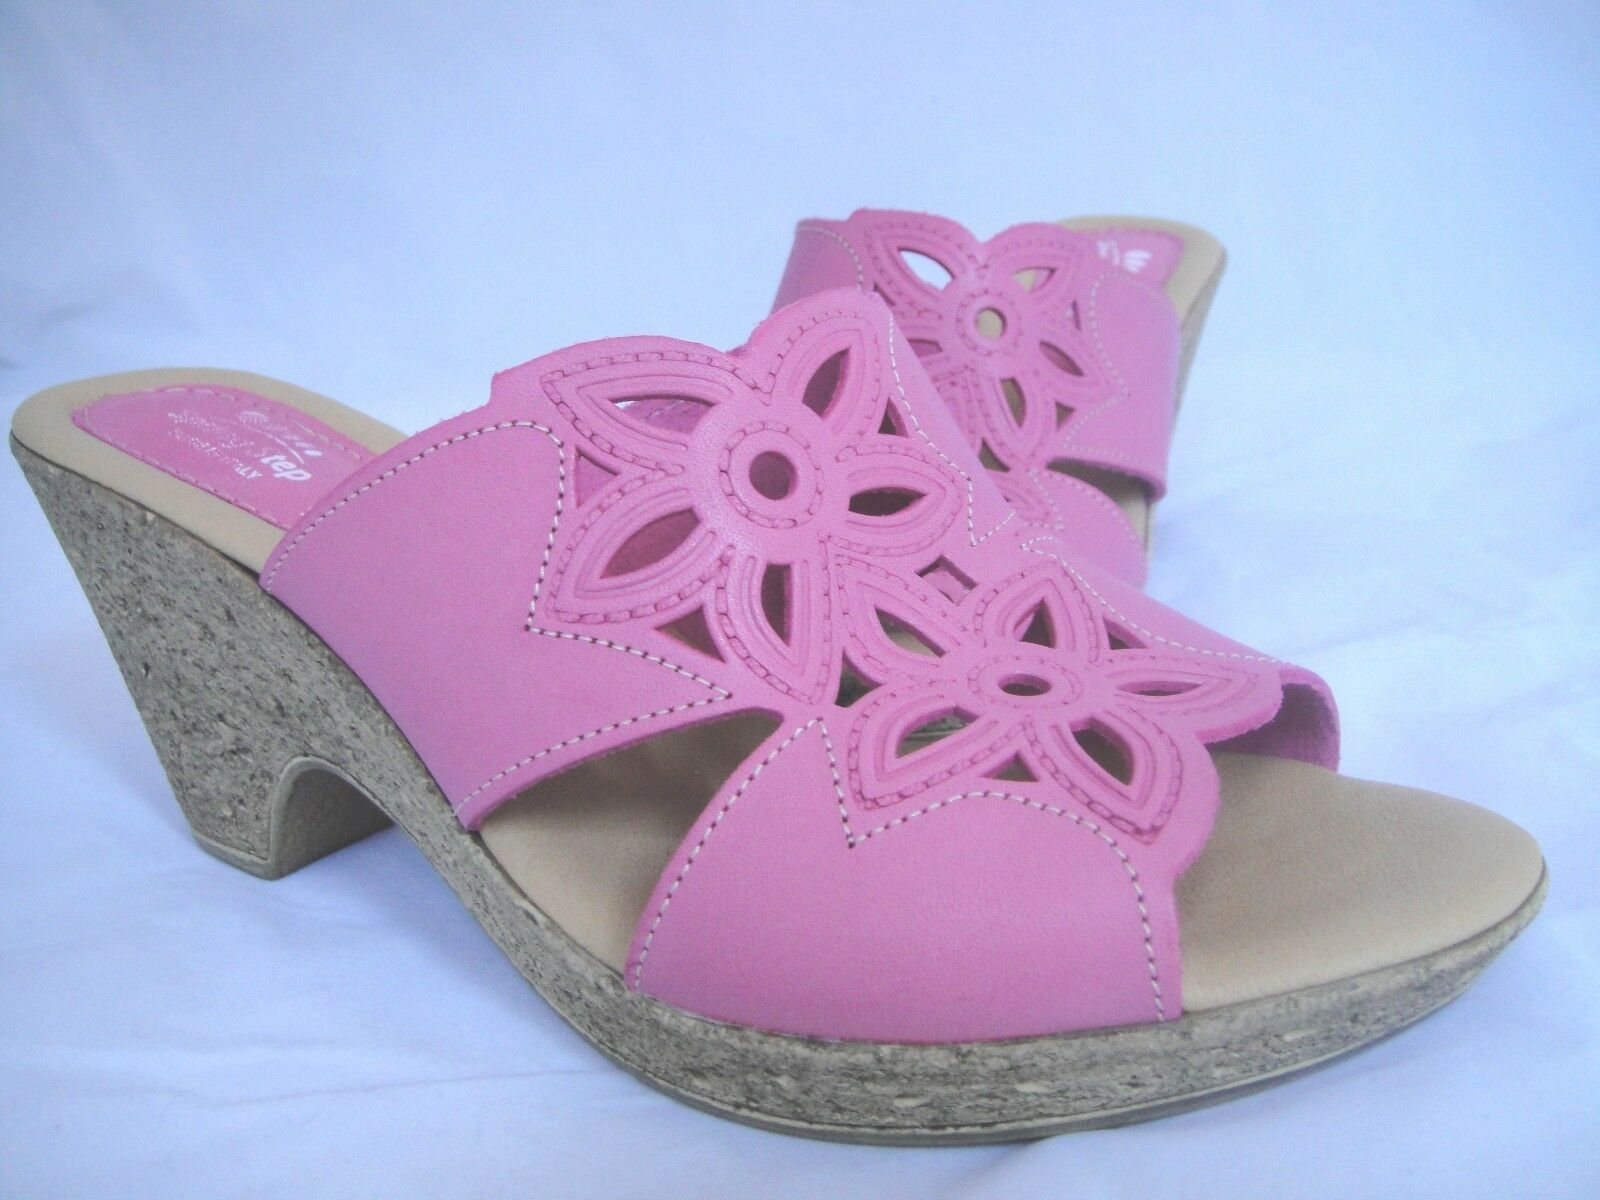 New Spring Step Accent platform Sandales 42 Damenss sz10.5 -11 EUR 42 Sandales   made  50565e